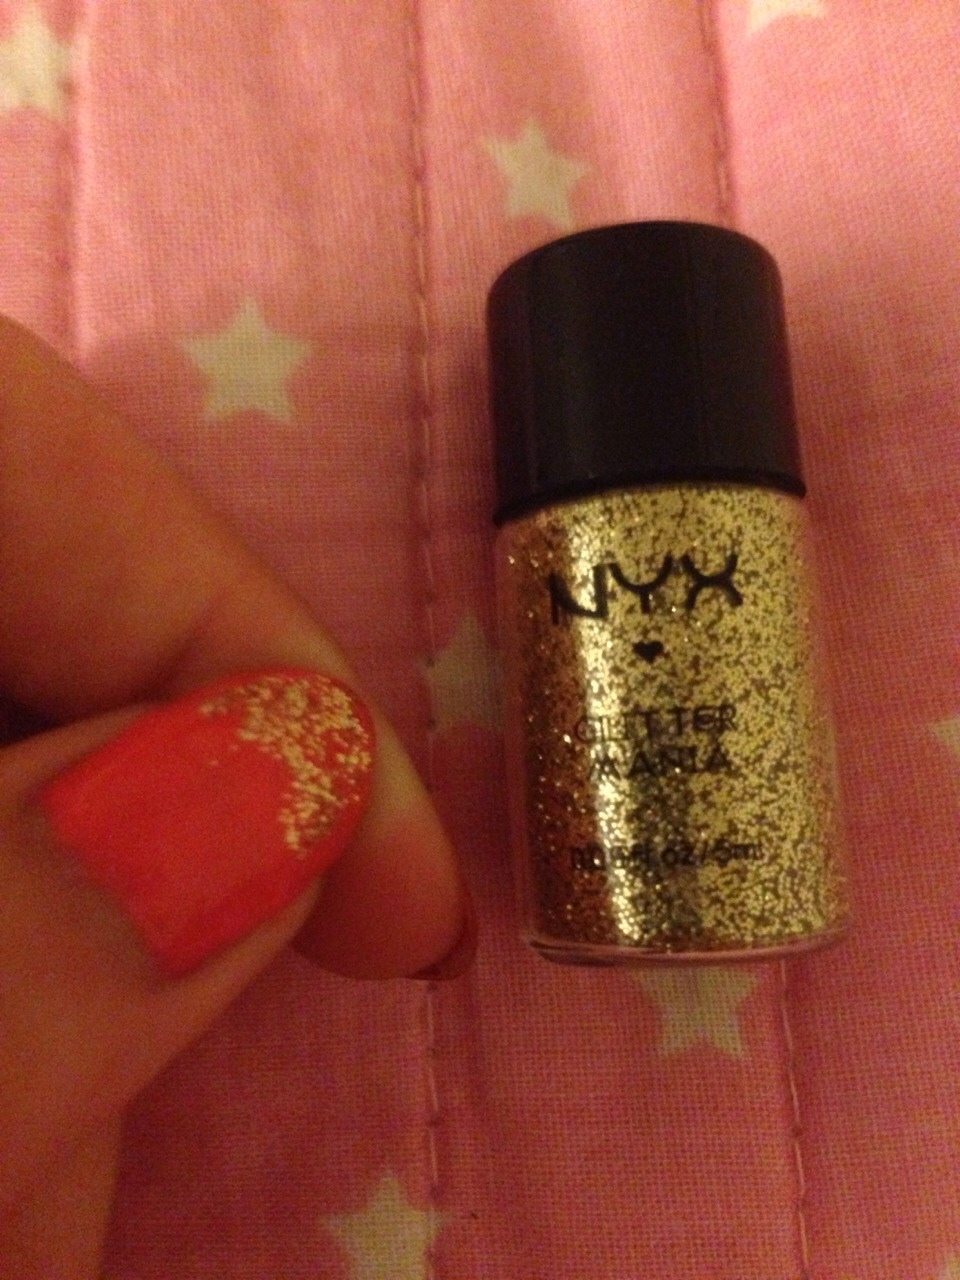 3) Now take your glitter makeup or finely cut glitter and apply it however you would like to on your nail while the last coat of paint you applied is still wet.